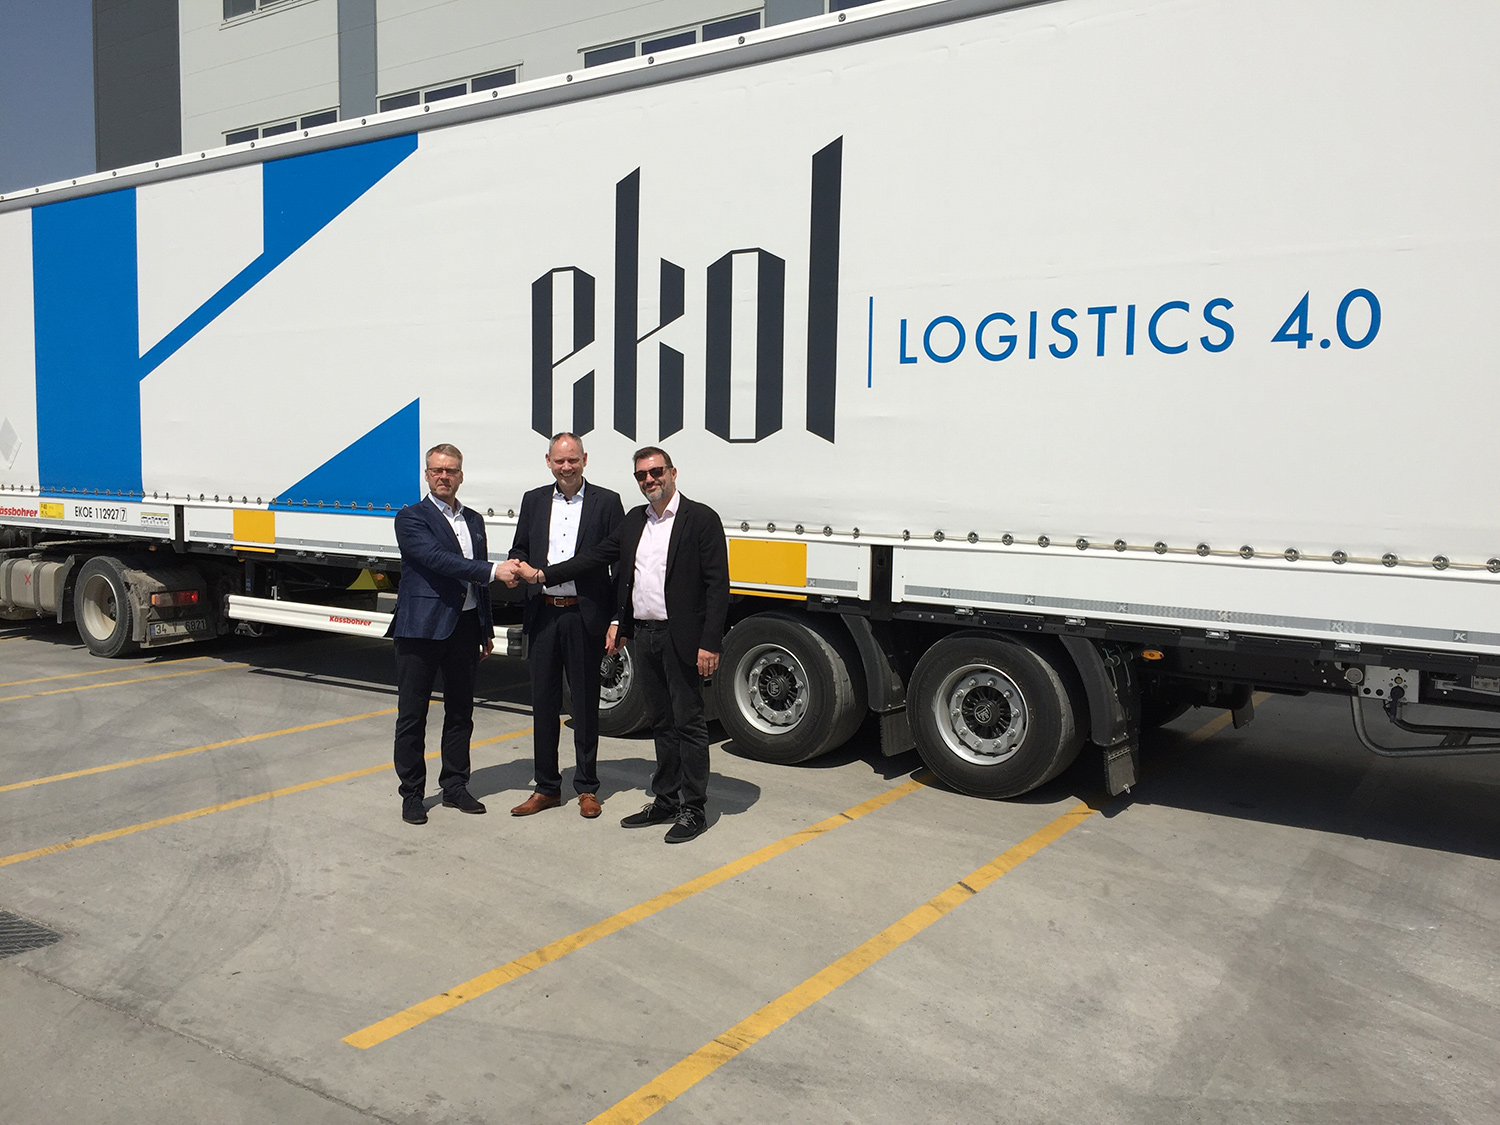 ekol logistics starts cooperation with blue water shipping